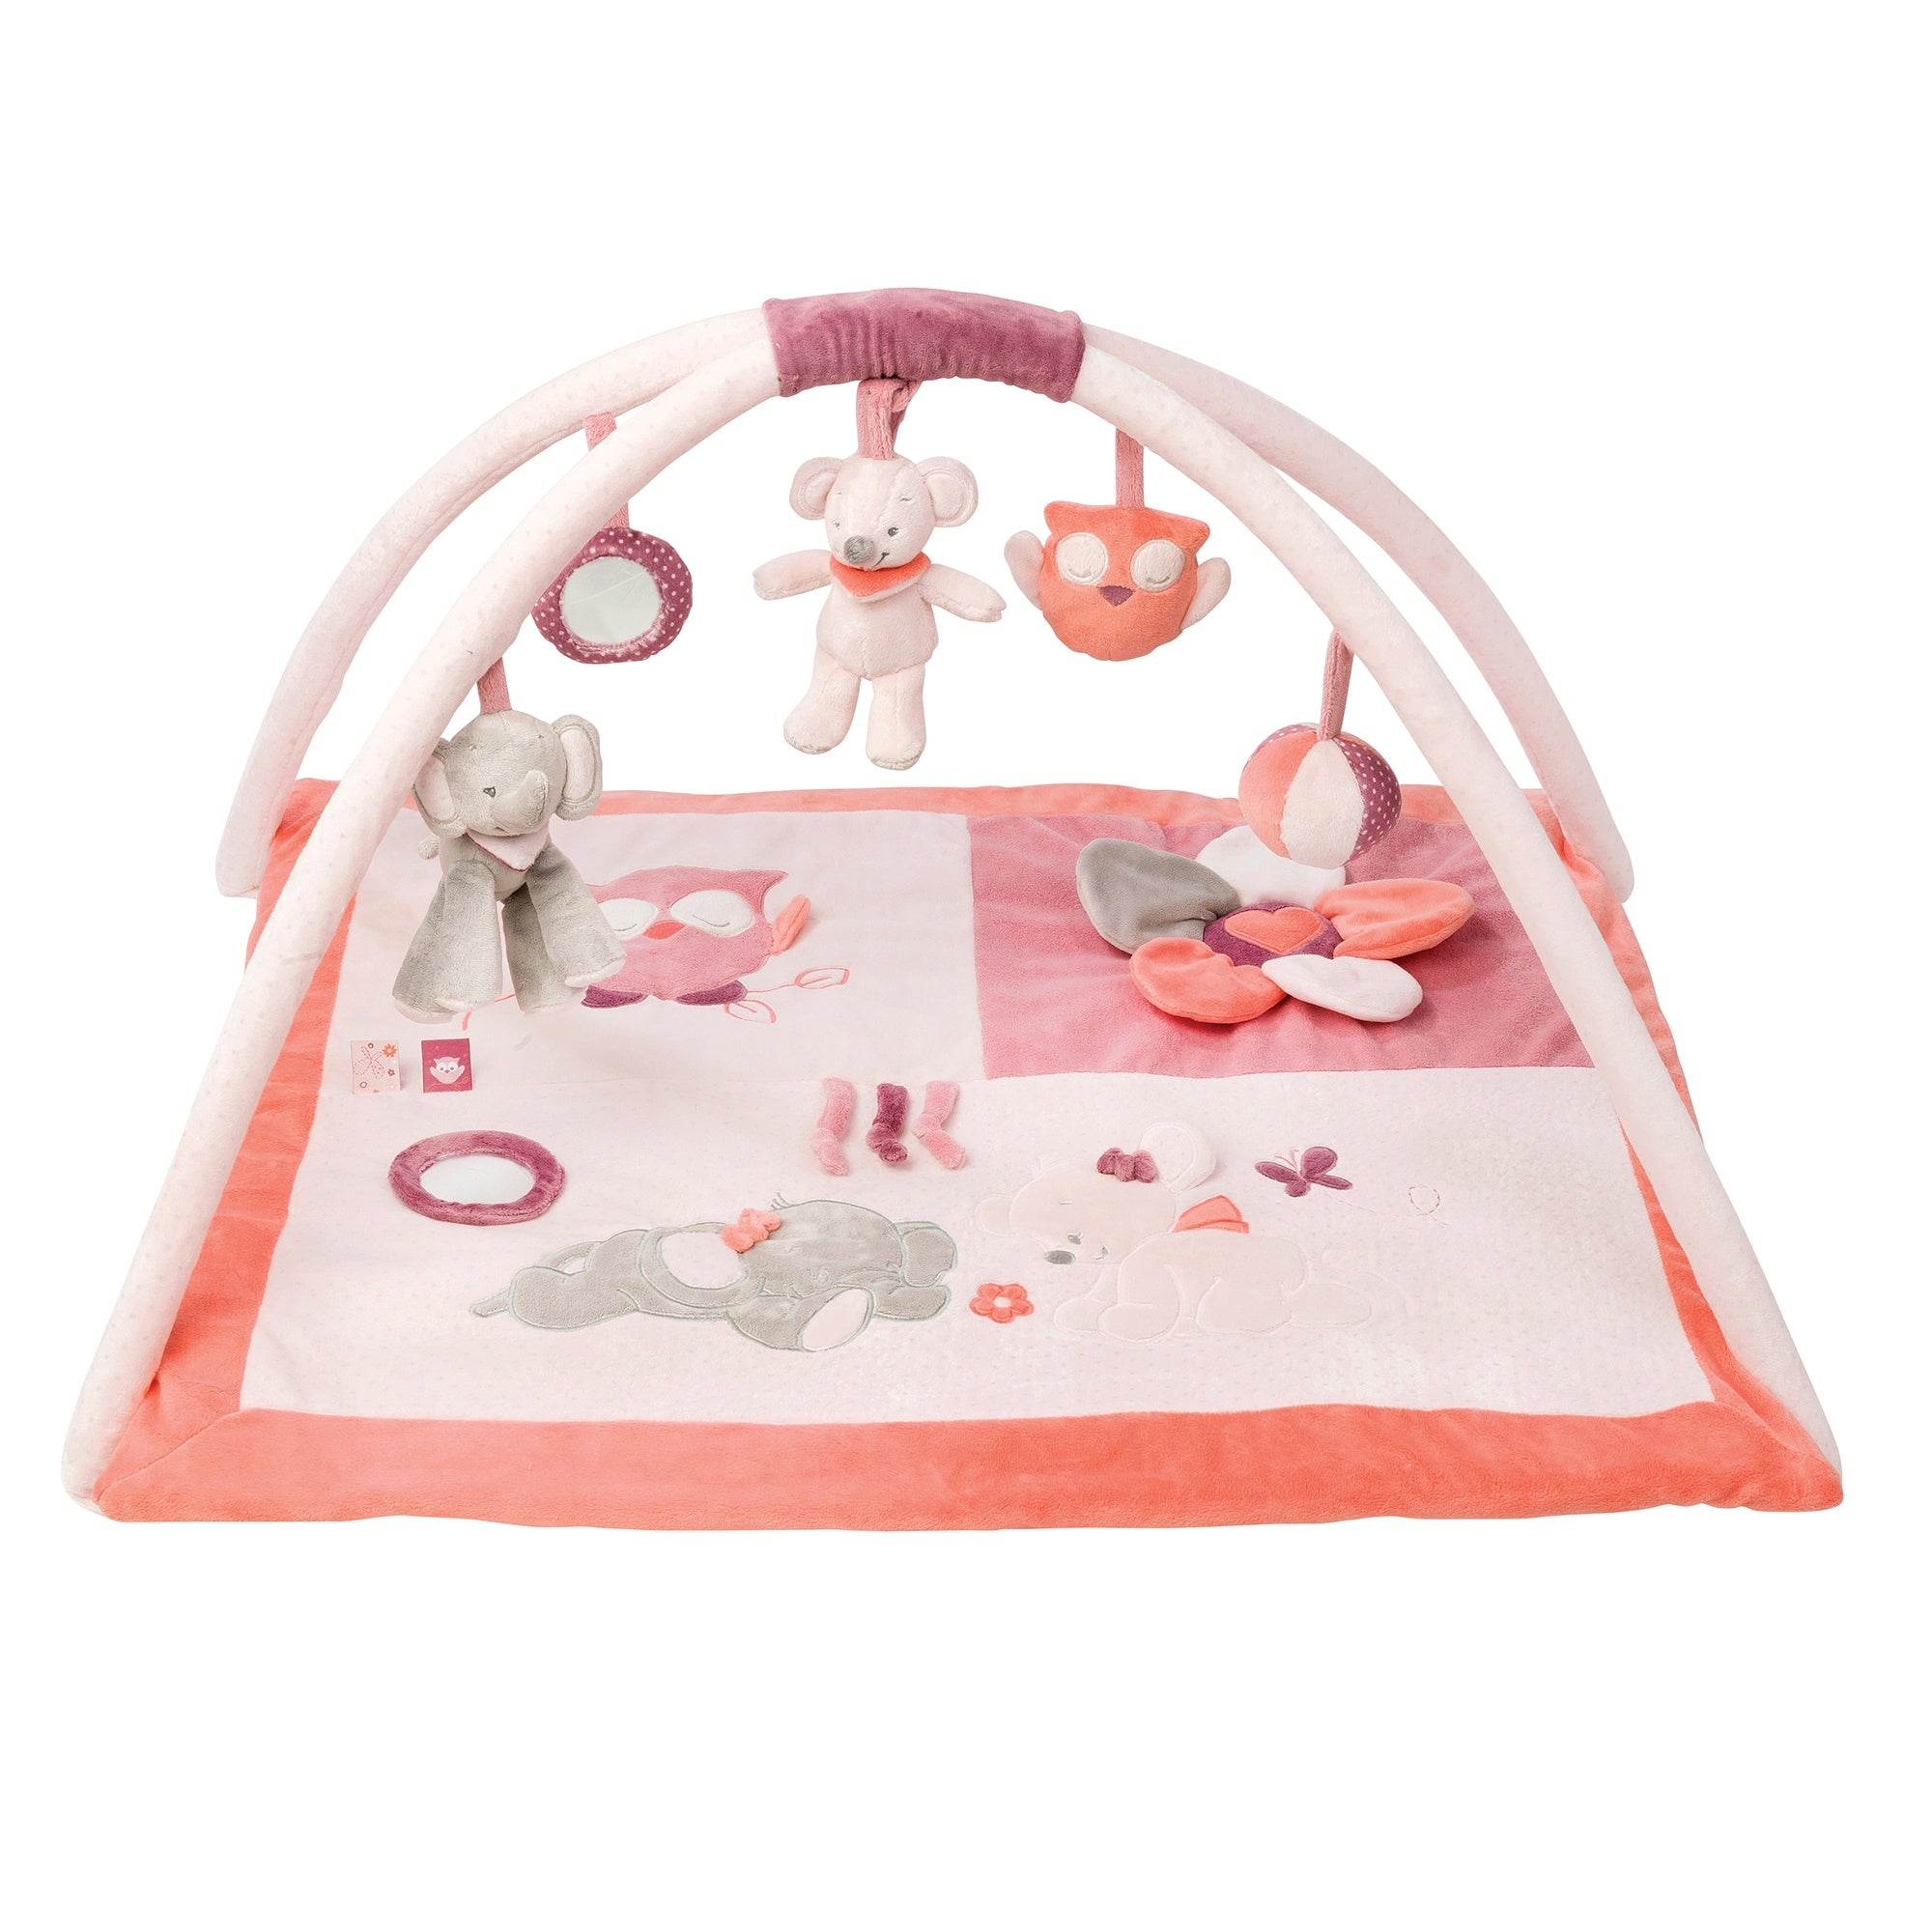 Nattou Playmat with Arches - Adele & Valentine